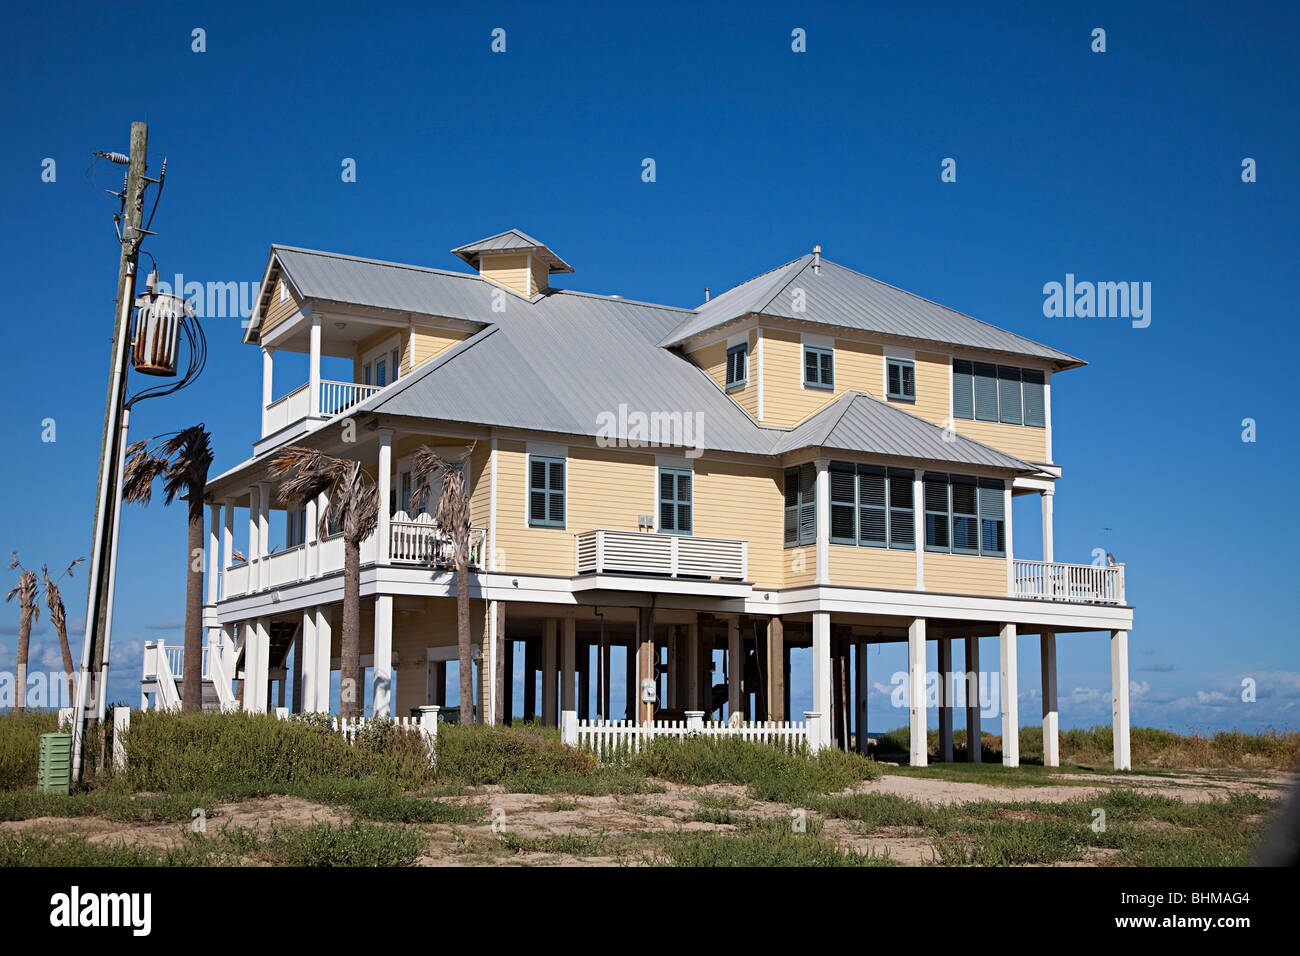 Wooden house on stilts on beach front galveston texas usa for Beach house plans on stilts